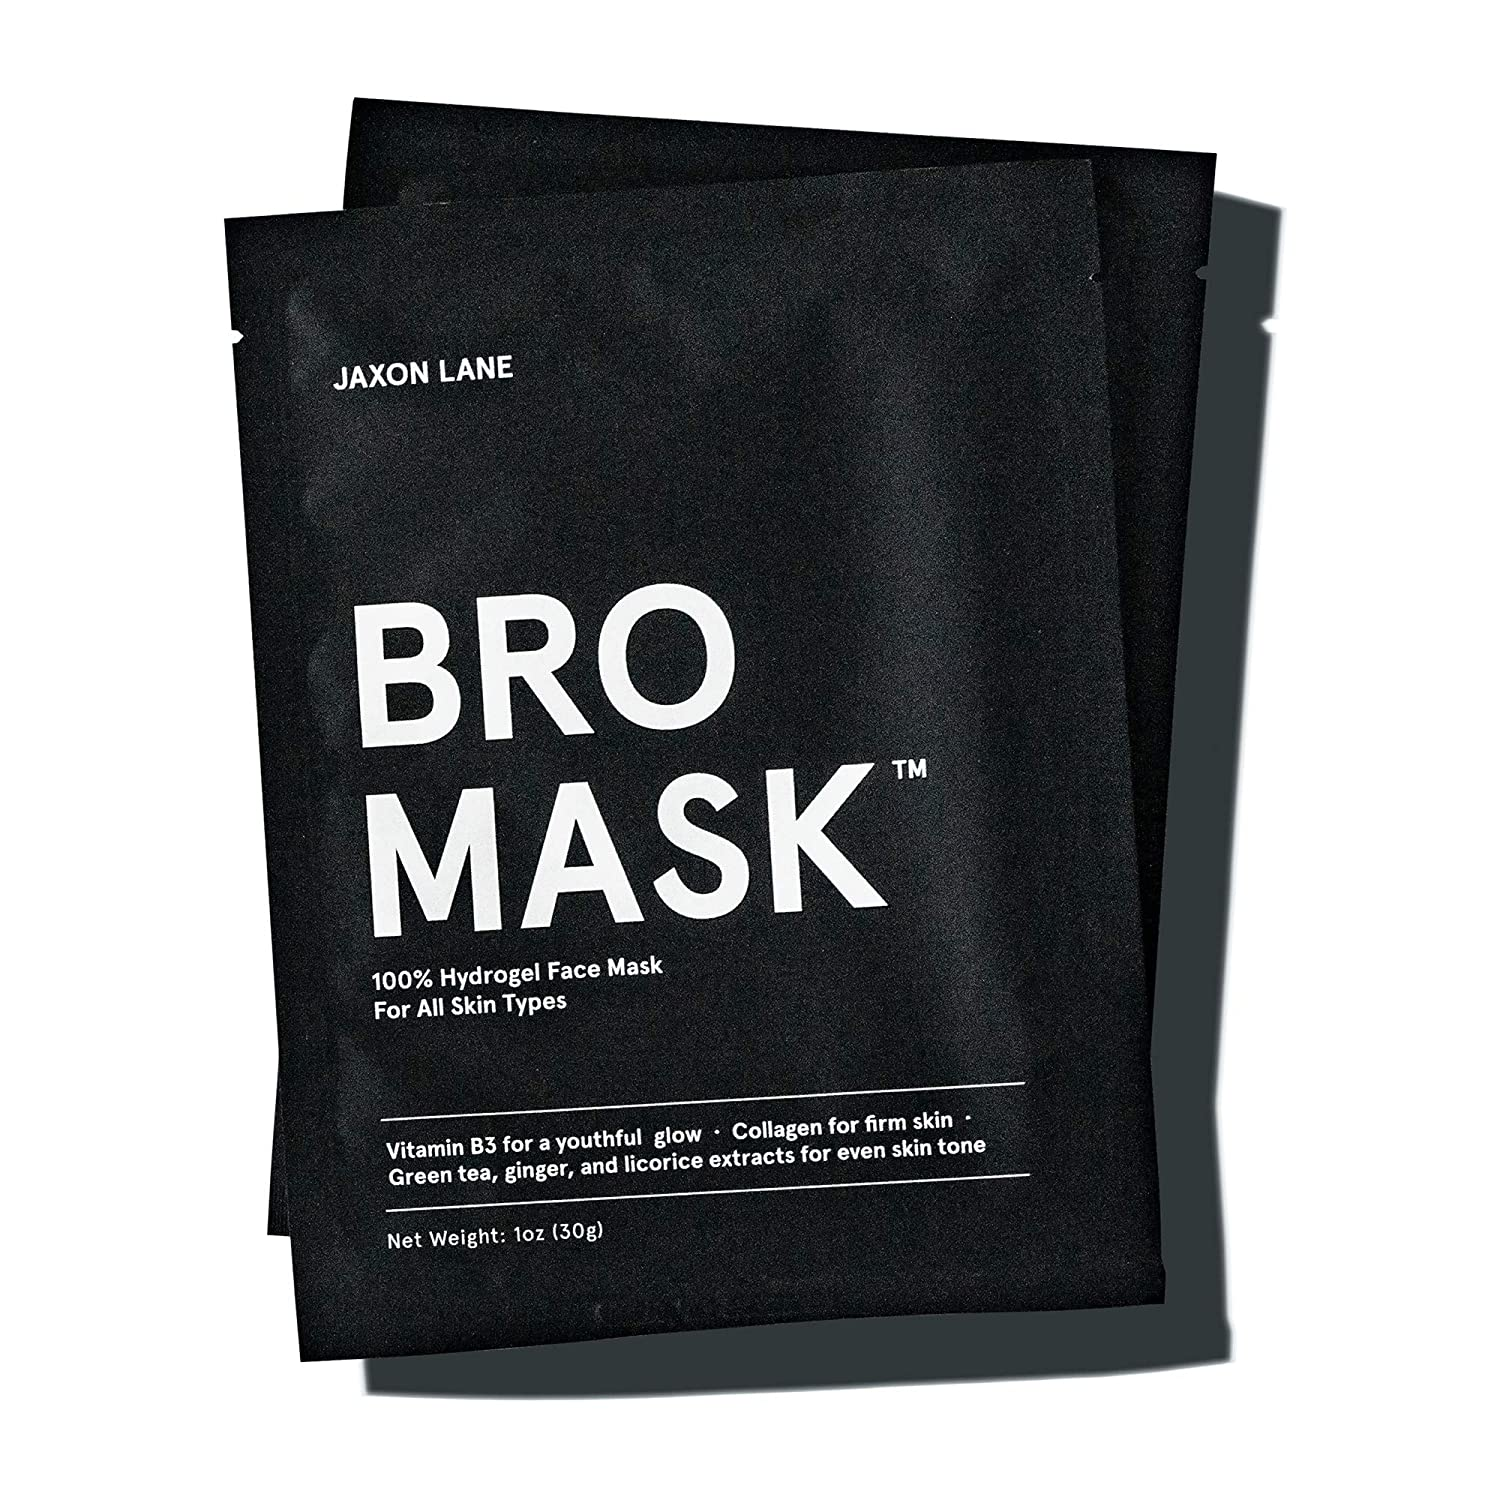 jaxon lane bro mask for men, anti-aging sheet masks